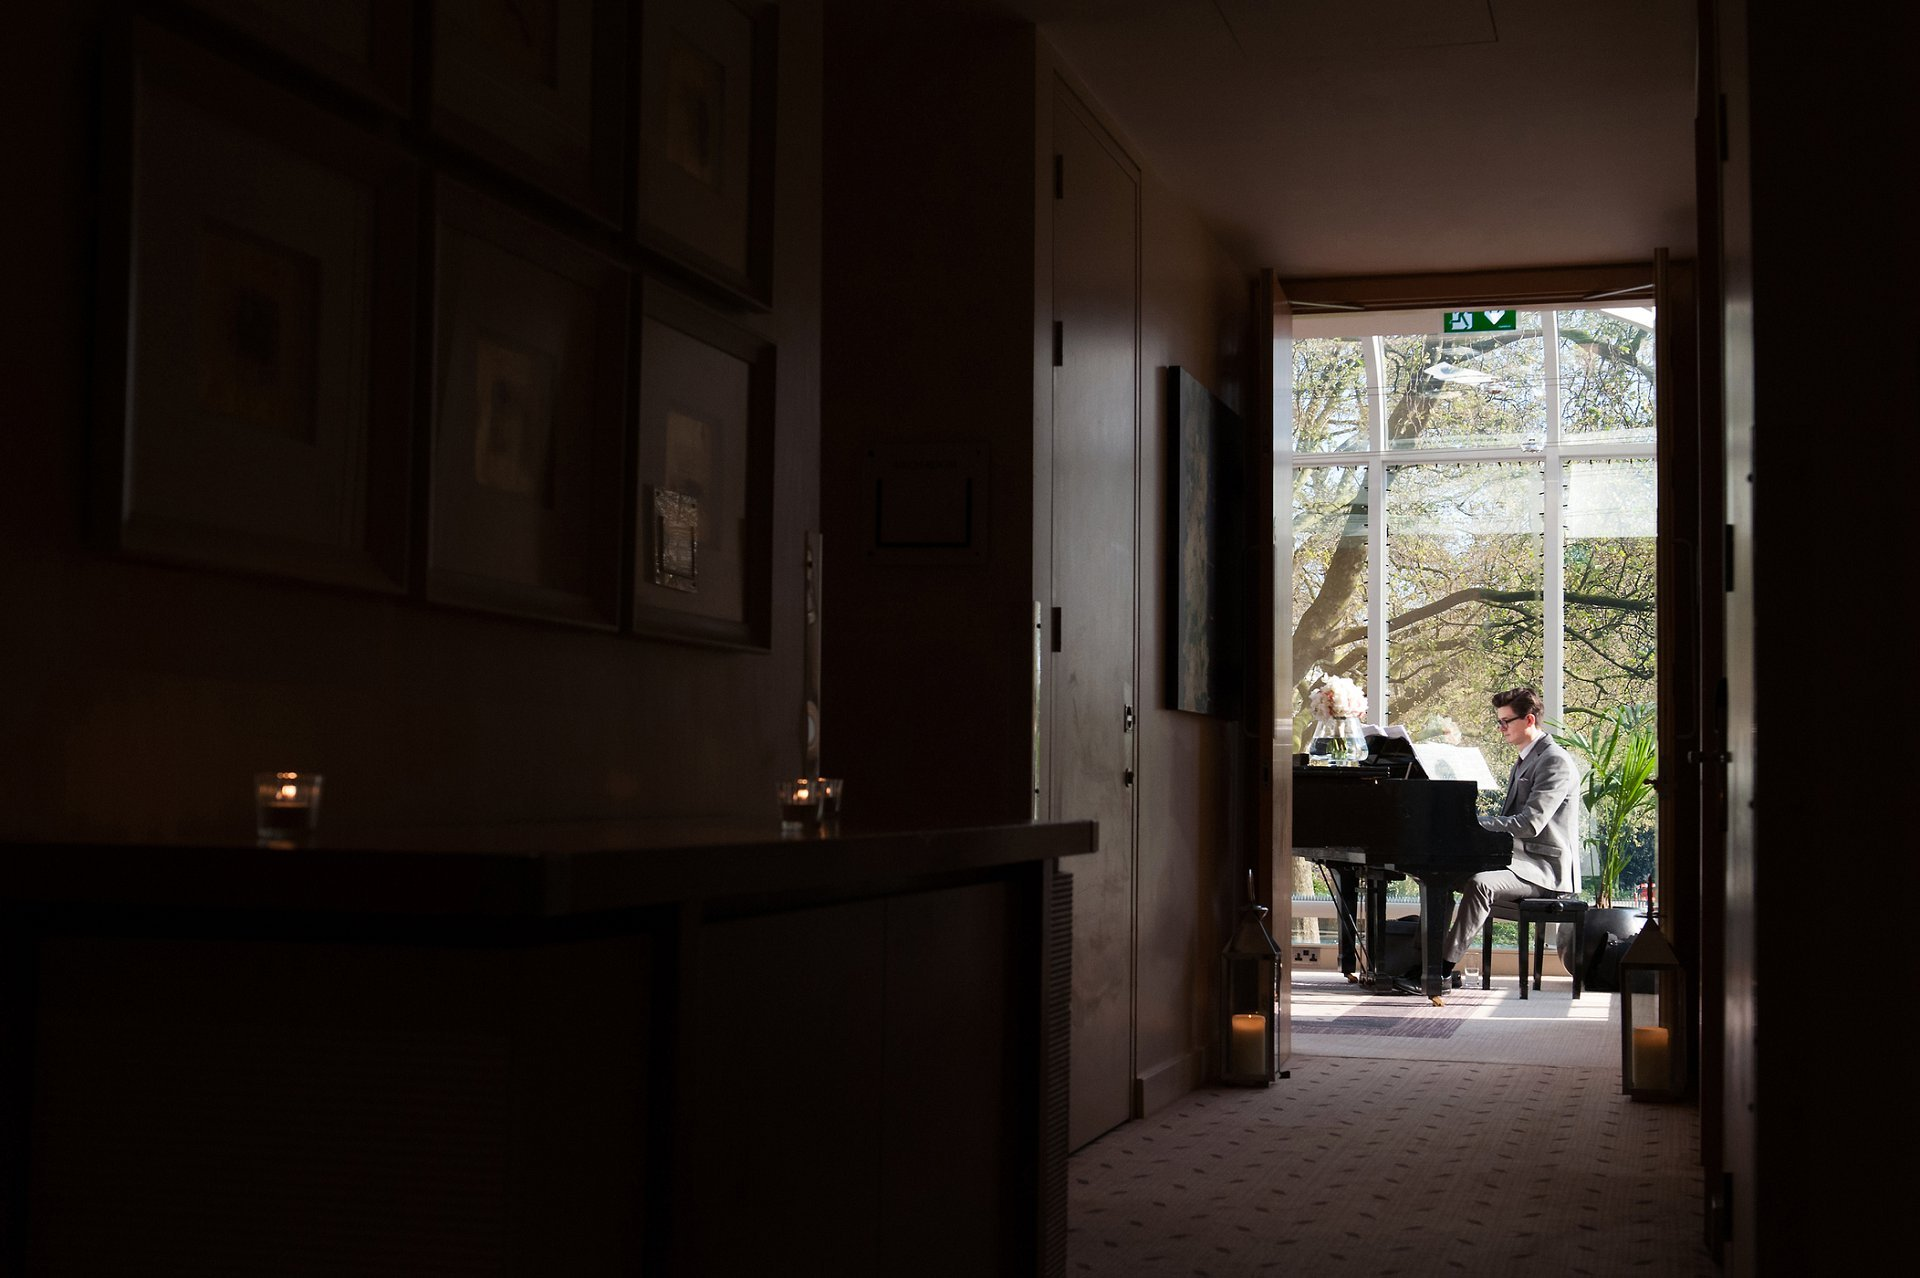 A pianist plays the piano during a reception in the Garden Room at the Jumeirah Carlton Tower in Knightbridge